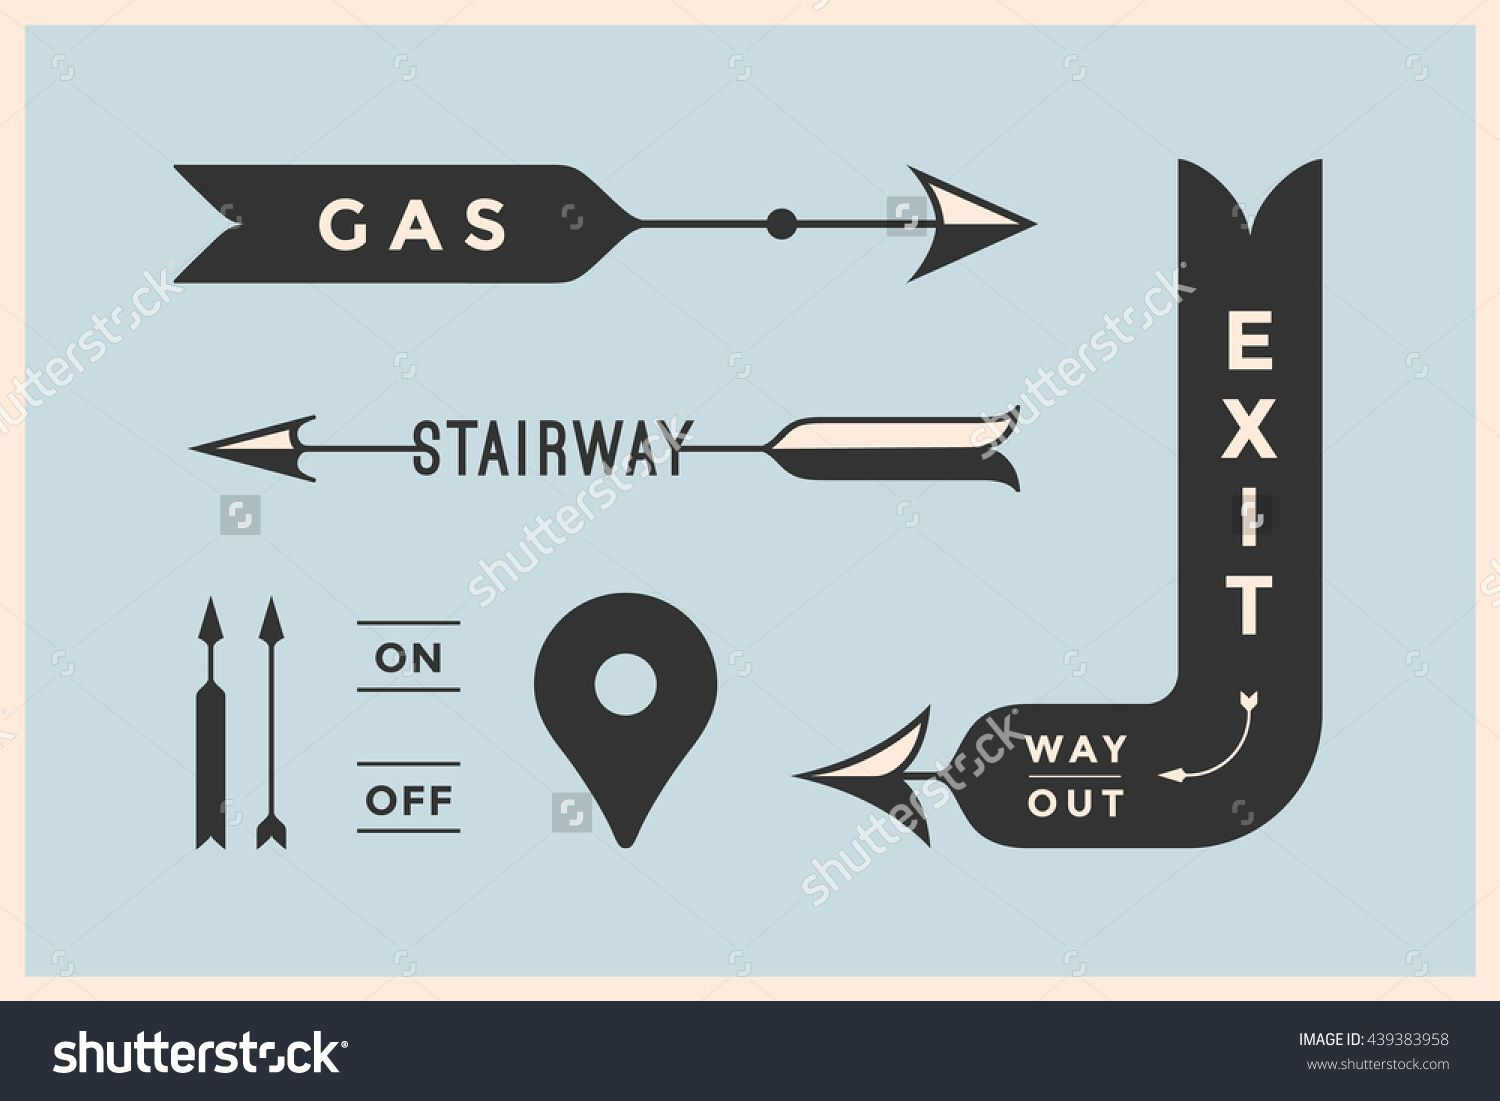 Set Of Vintage Arrows And Banners With Inscription Exit Way Out Gas Stairway Design Elements In Retro Style Arrow Signs On Color Background Vector